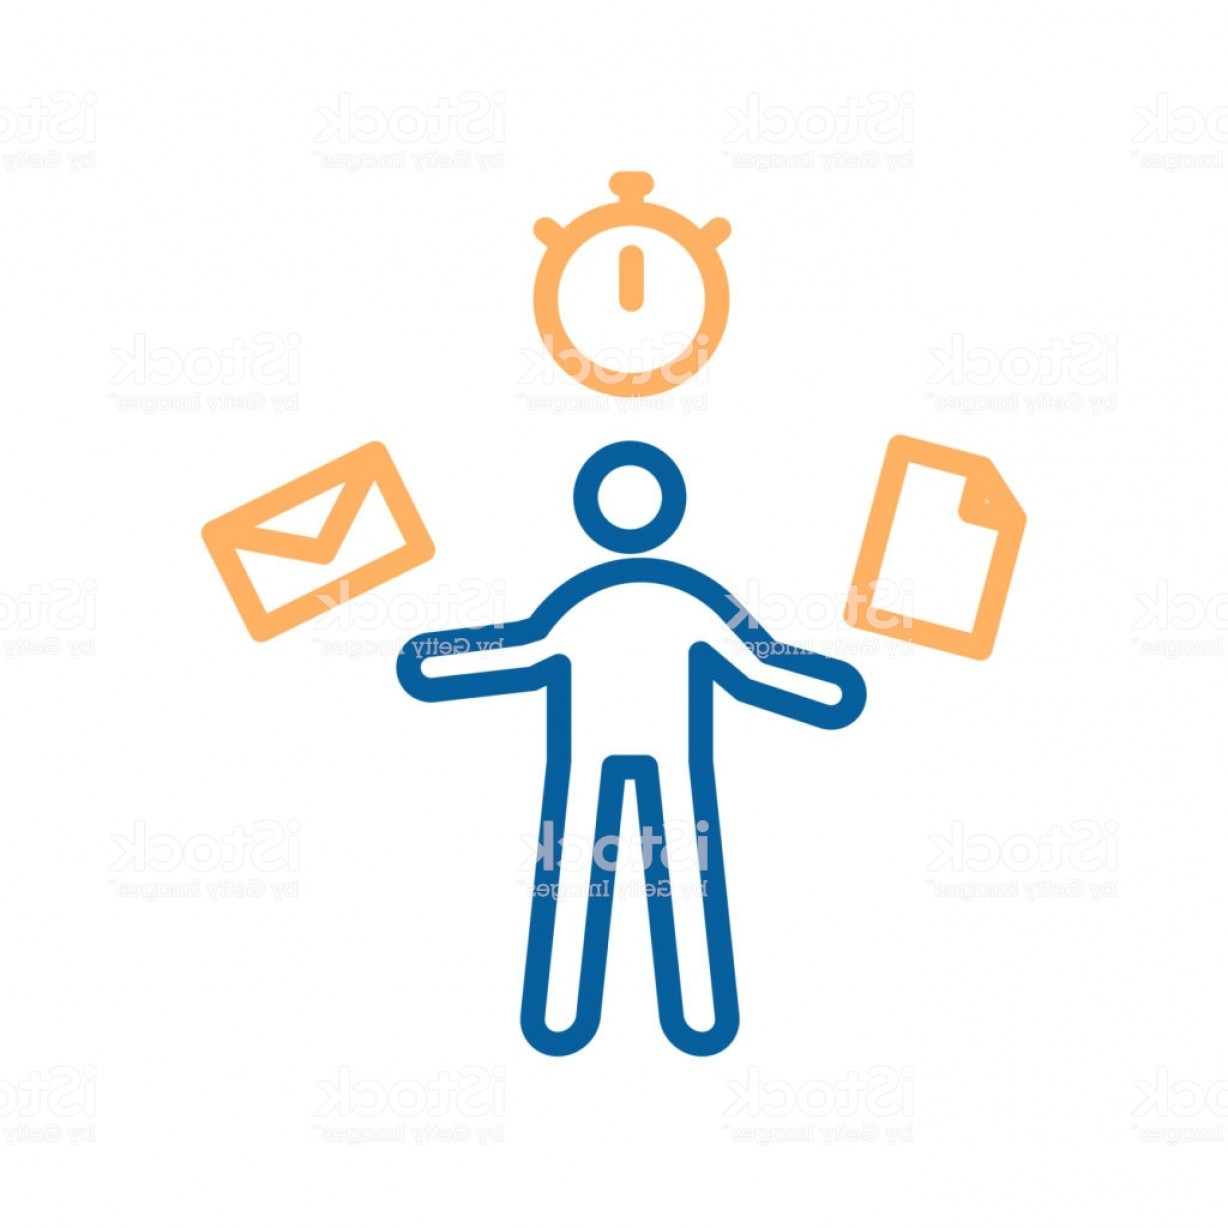 Stop Watch Vector Ai File: Trendy Thin Line Work In Progress Icon Vector Illustrator Of A Person Multi Tasking Gm